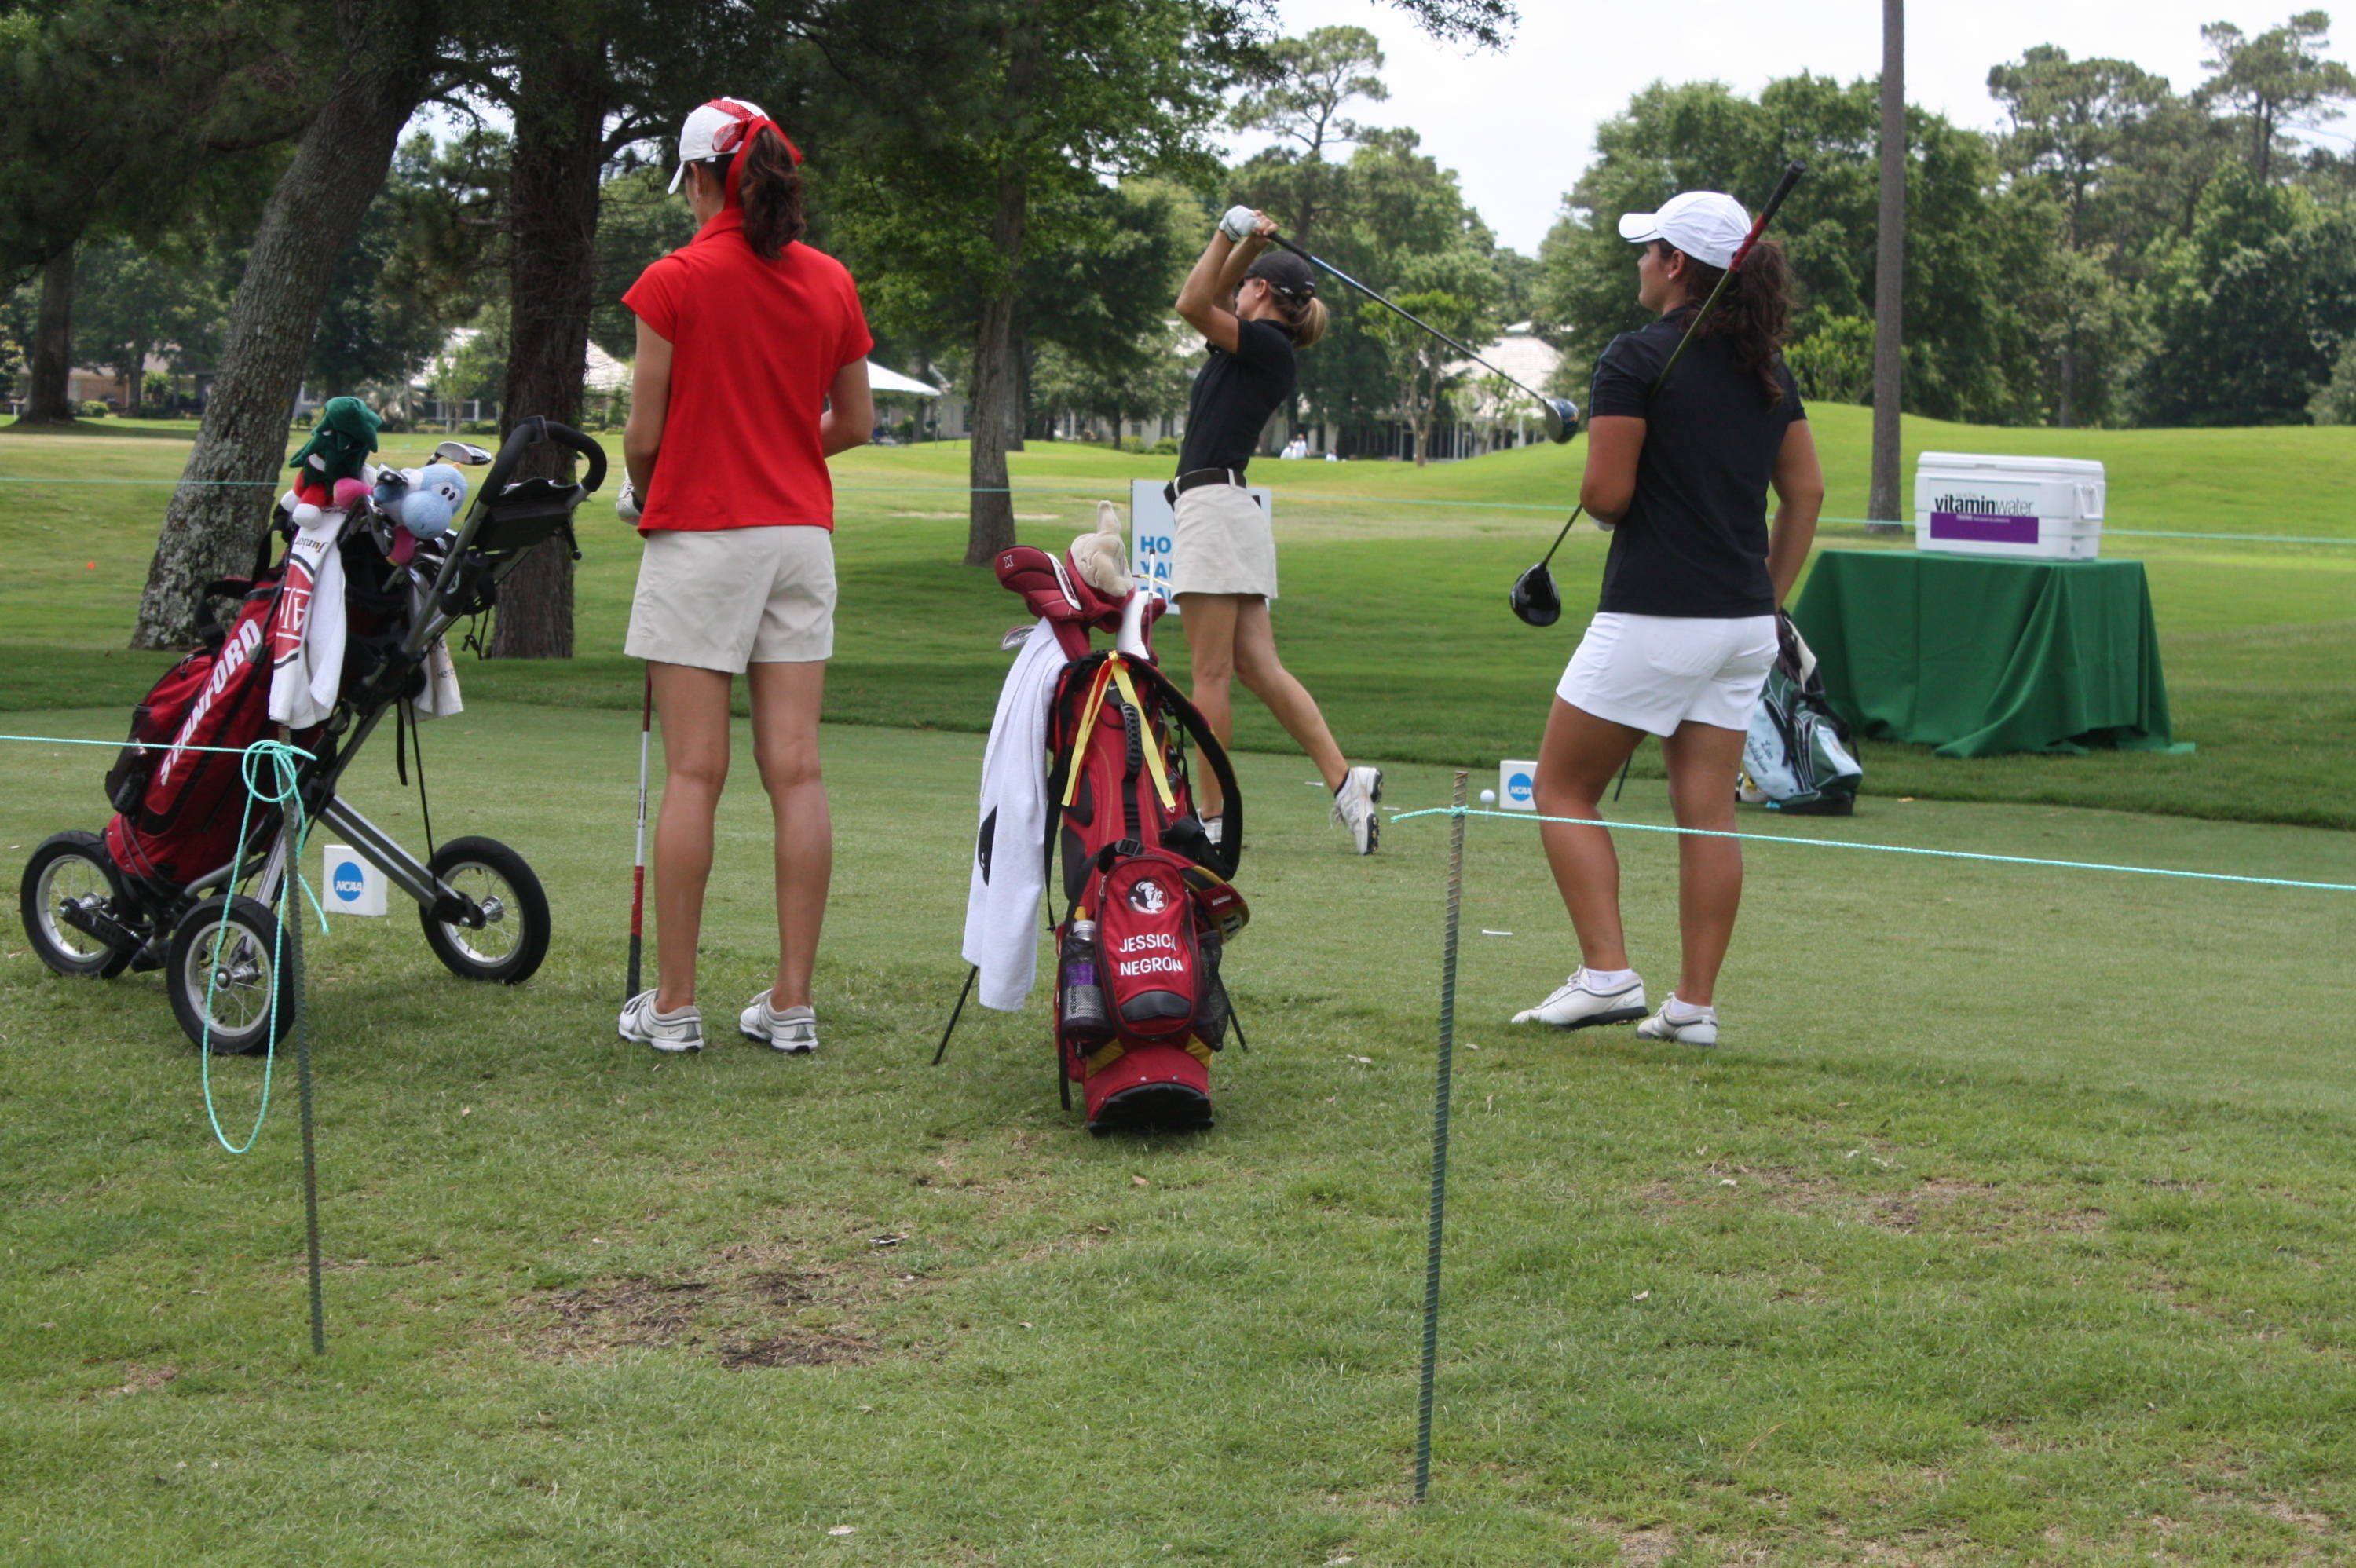 2010 NCAA Women's Golf - Round 1